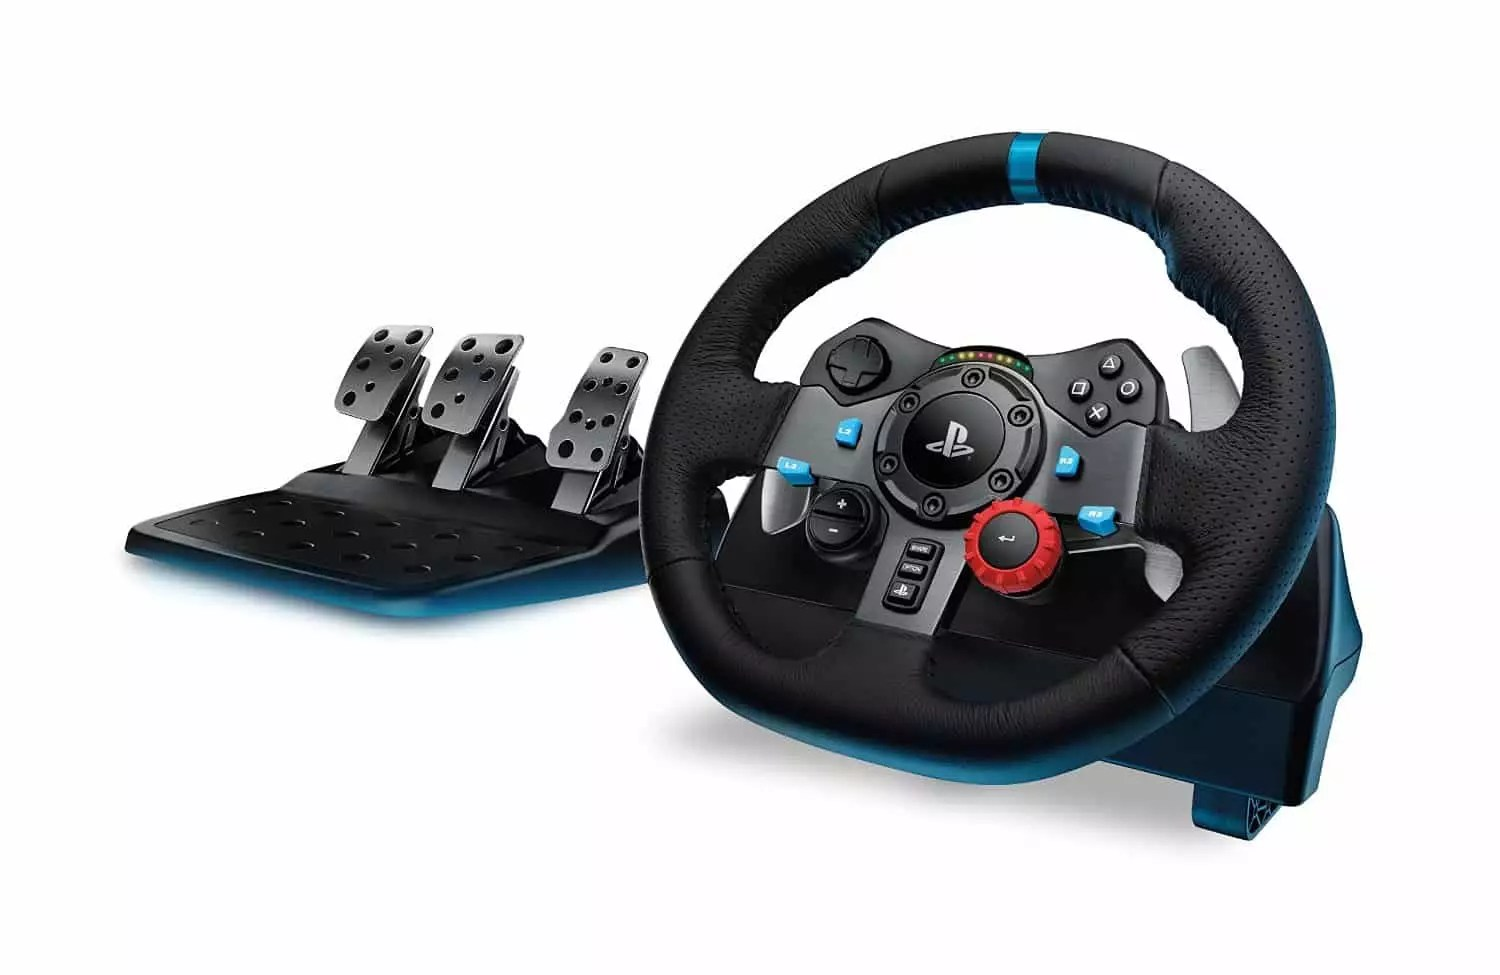 ec9a69c67e2 Is the Logitech G29 a scam? - PerfectSimracer.com